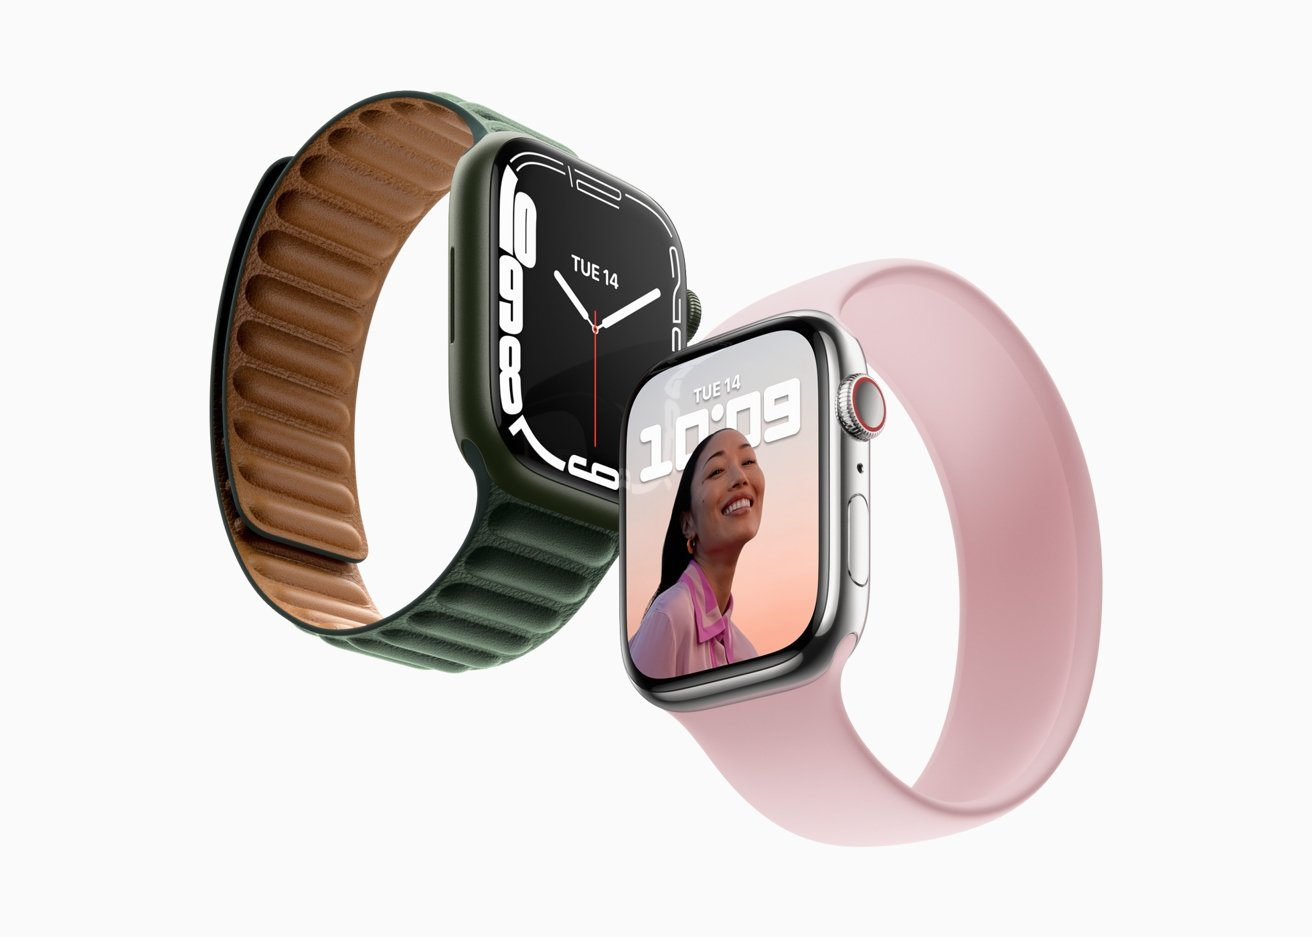 The Apple Watch Series 7 is not a major upgrade from the Series 6, but it features some minor improvements.